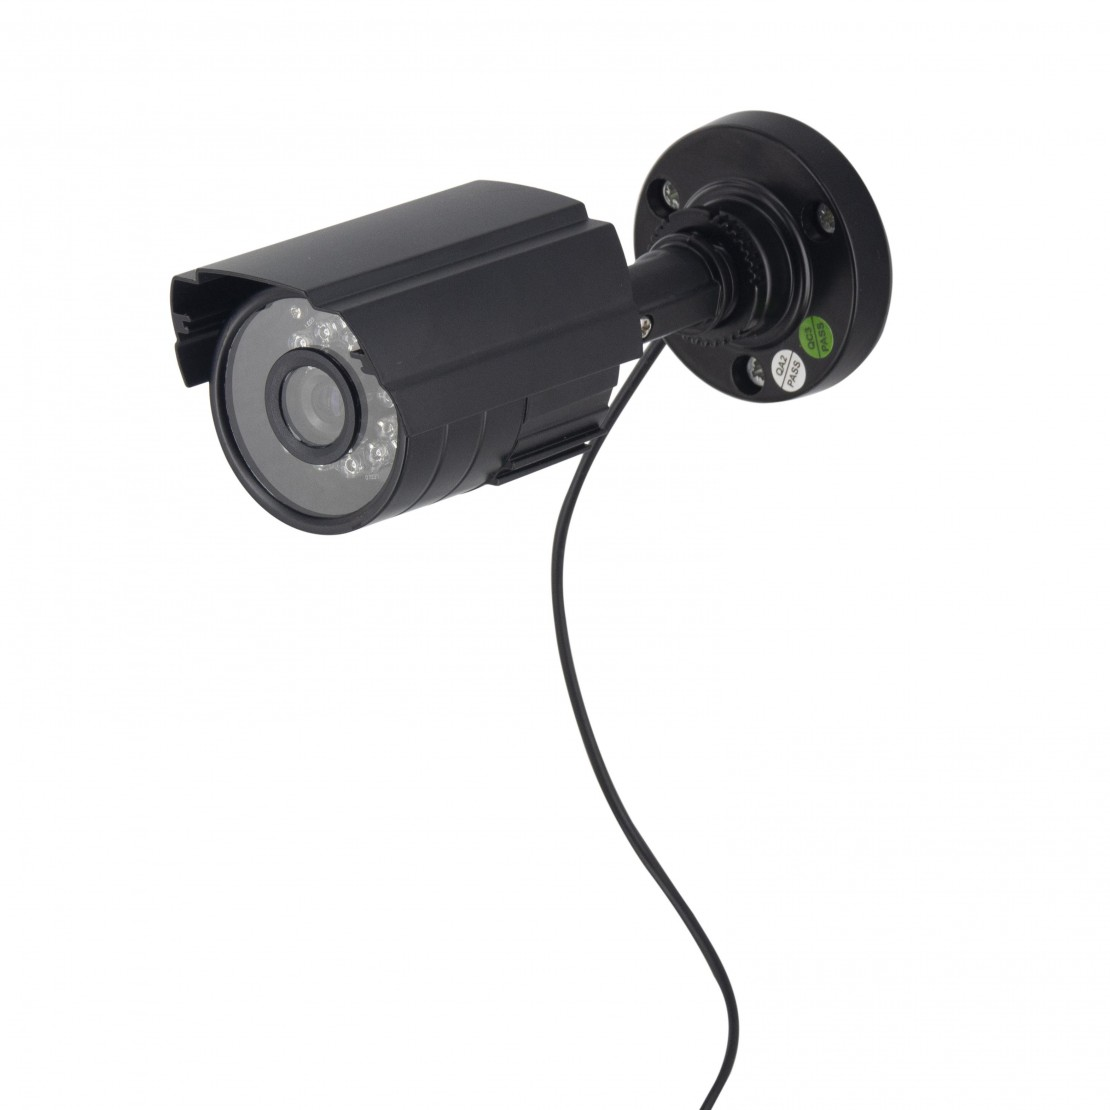 Additional camera for videophone